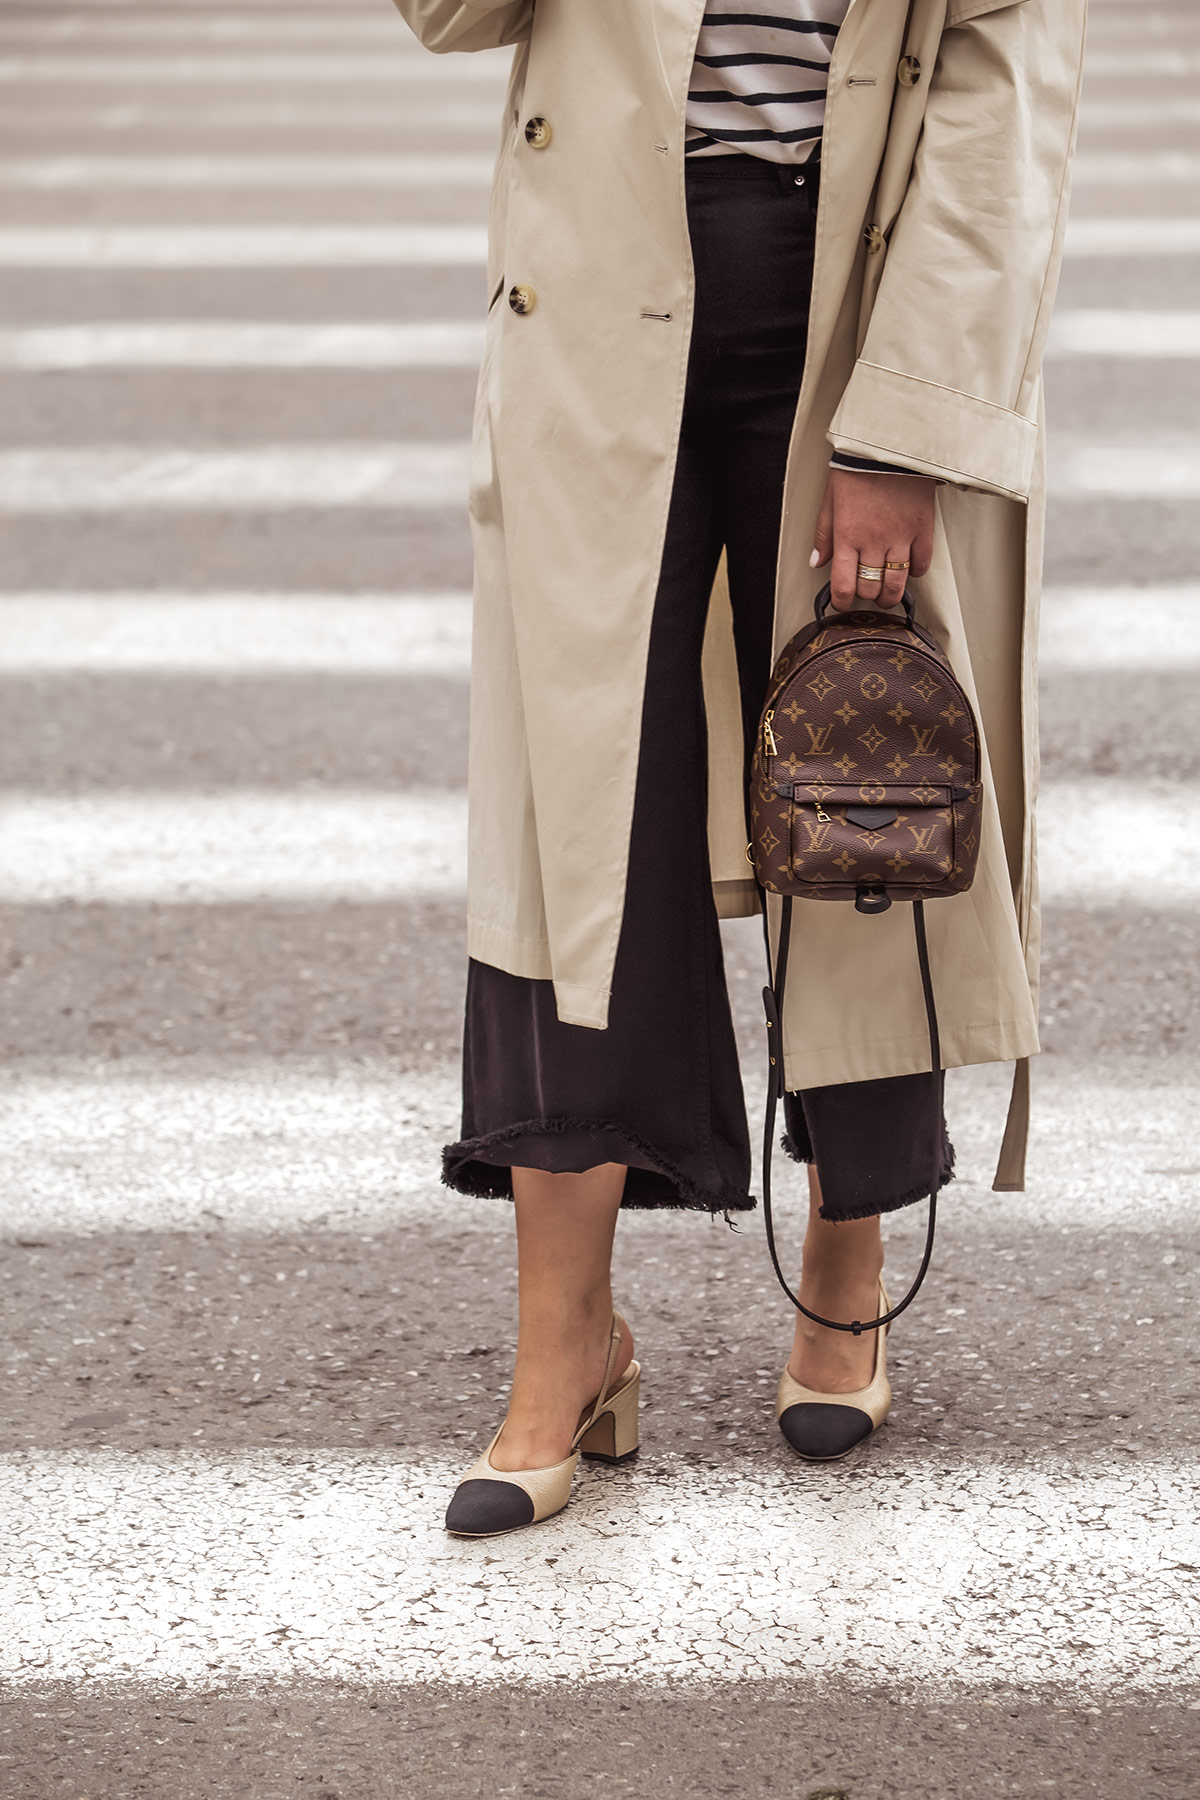 Louis Vuitton Palm Springs backpack, denim culottes, beige trench coat and Chanel classic slingbacks as seen at Stella Asteria